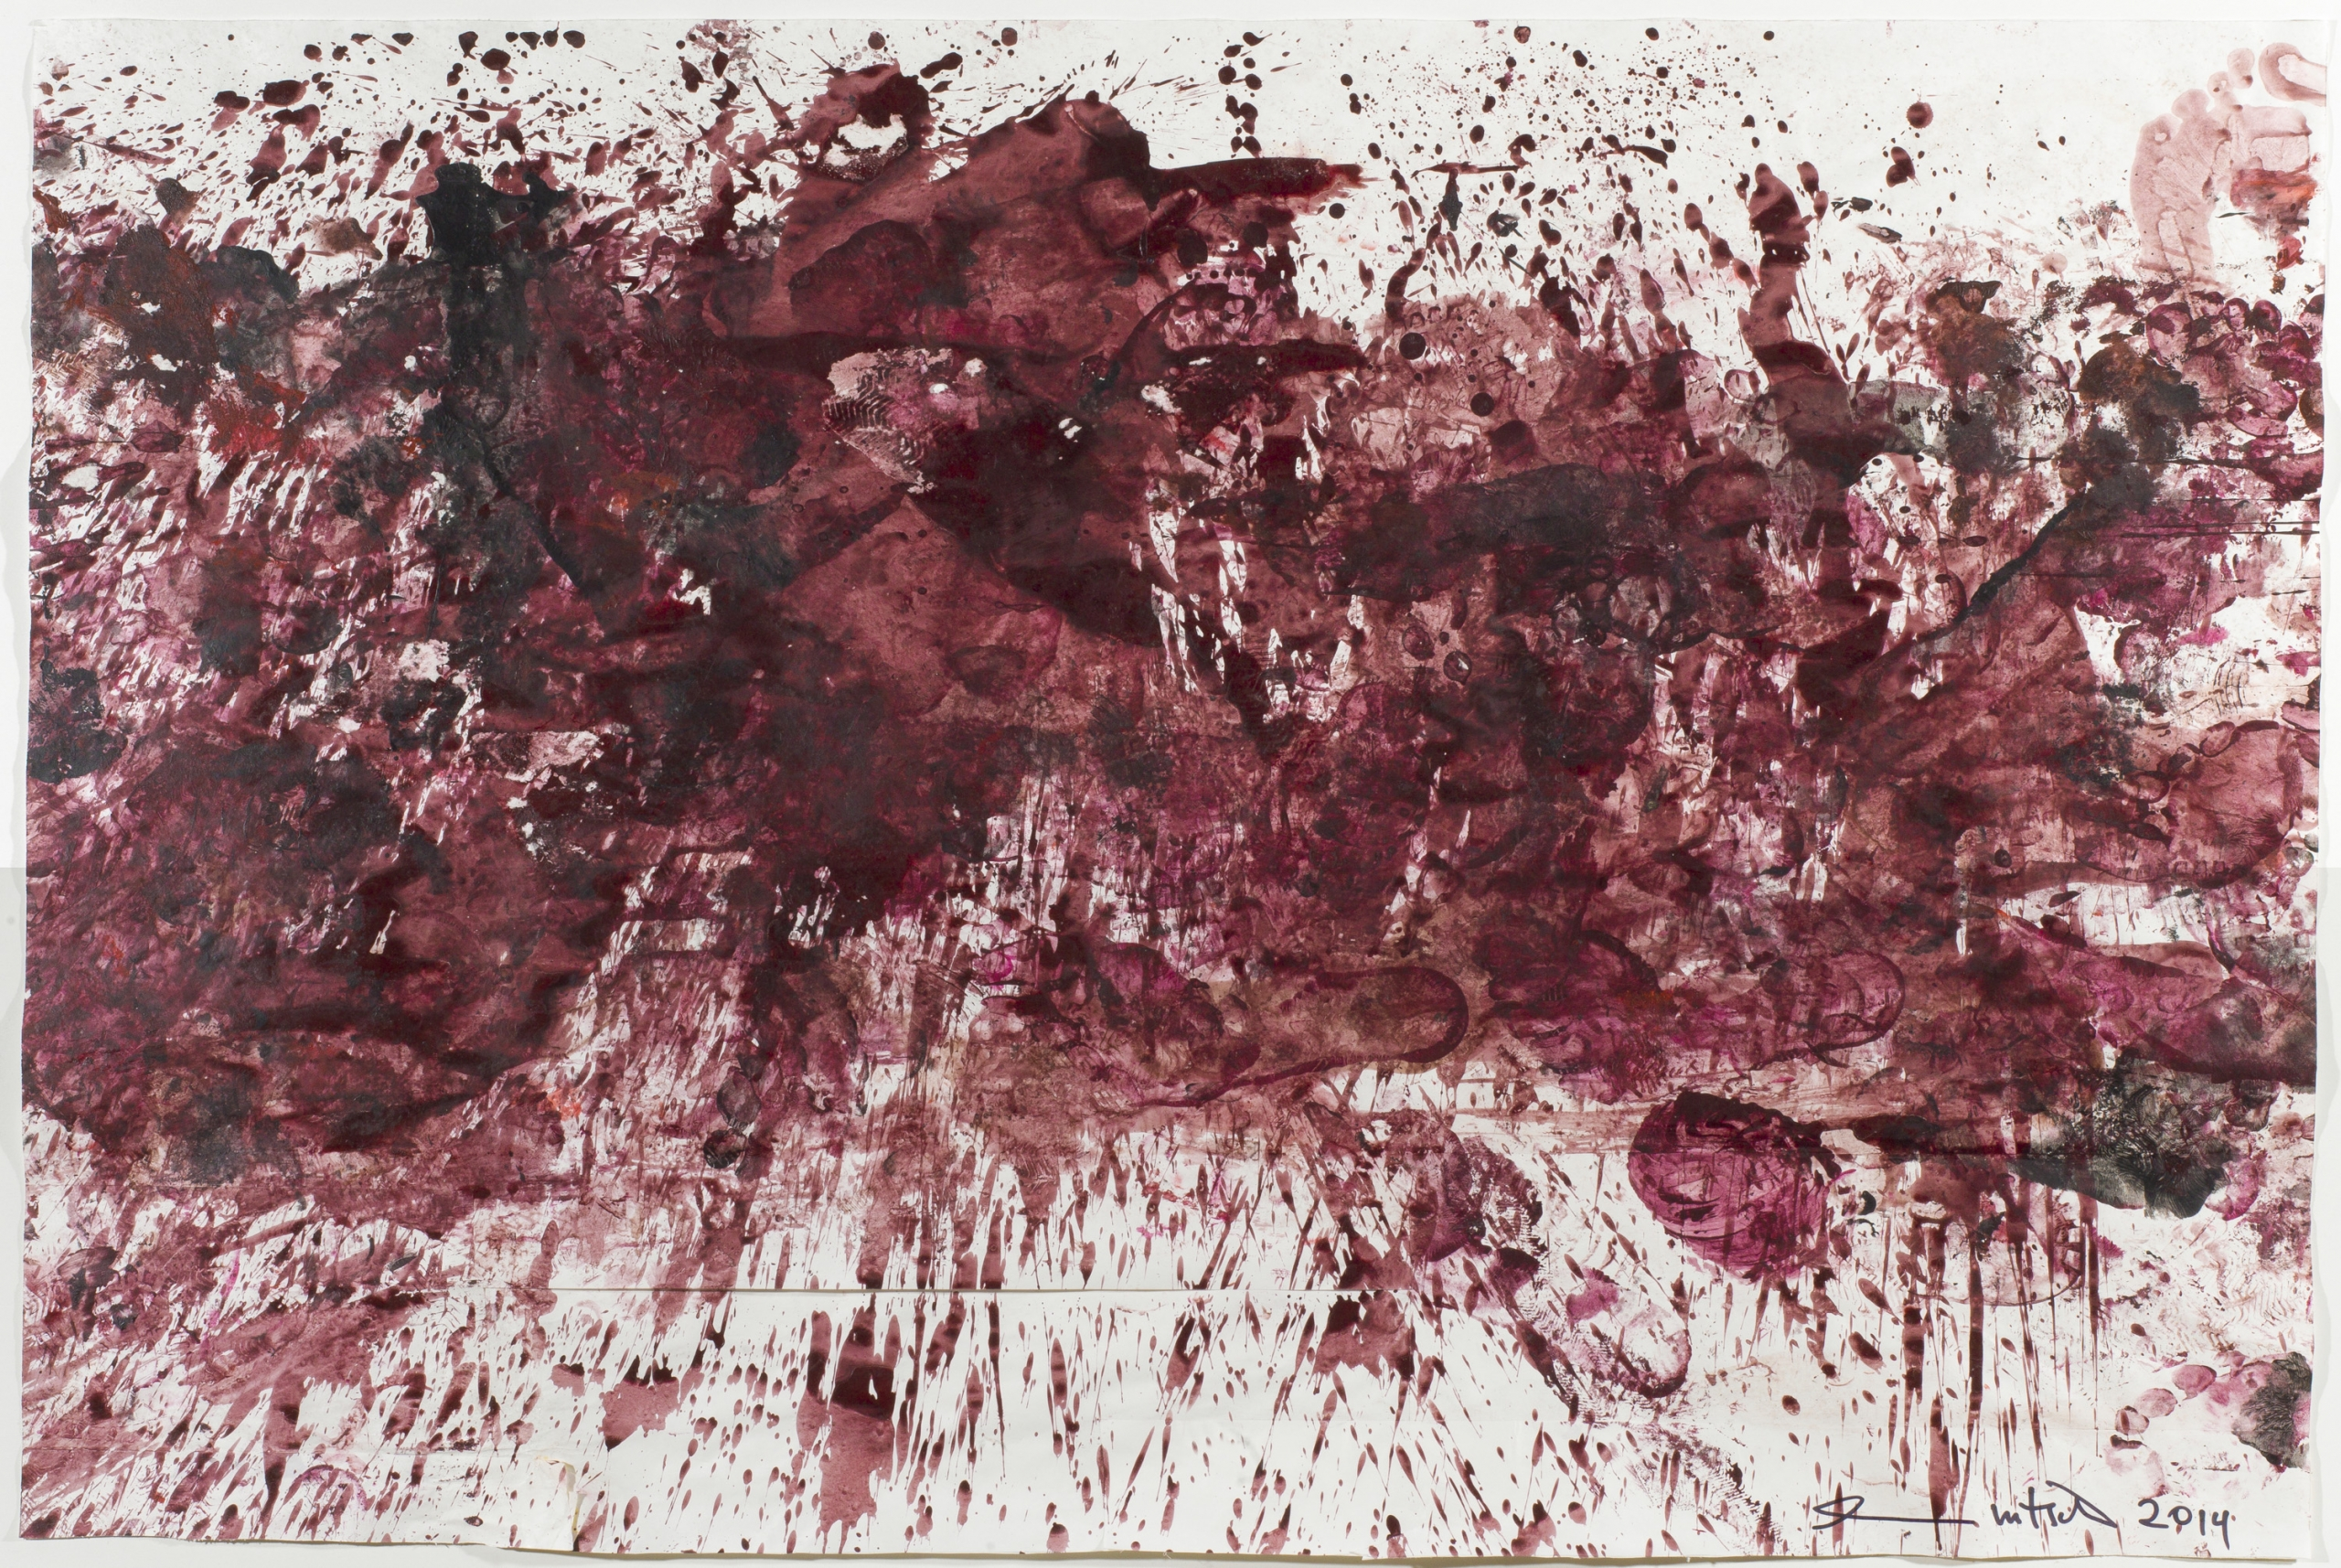 Hermann Nitsch, Ohne Titel 70. Malaktion / untitled 70th painting action